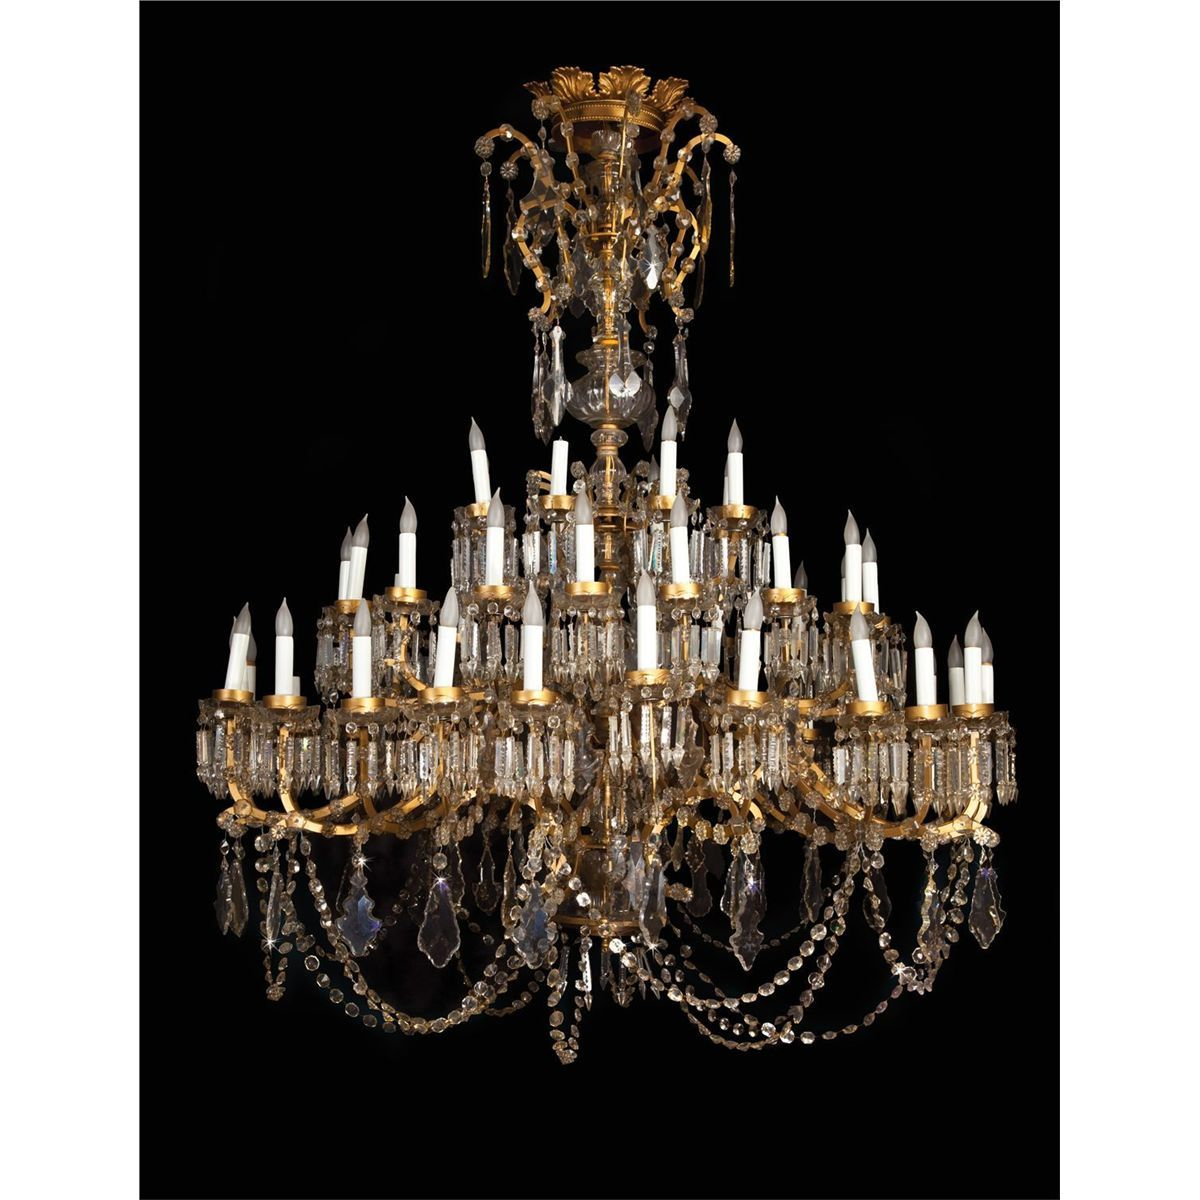 Mgm 1938 monumental 20th century rococo style cut glass chandelier mgm 1938 monumental 20th century rococo style cut glass chandelier with scrolling arms aloadofball Gallery